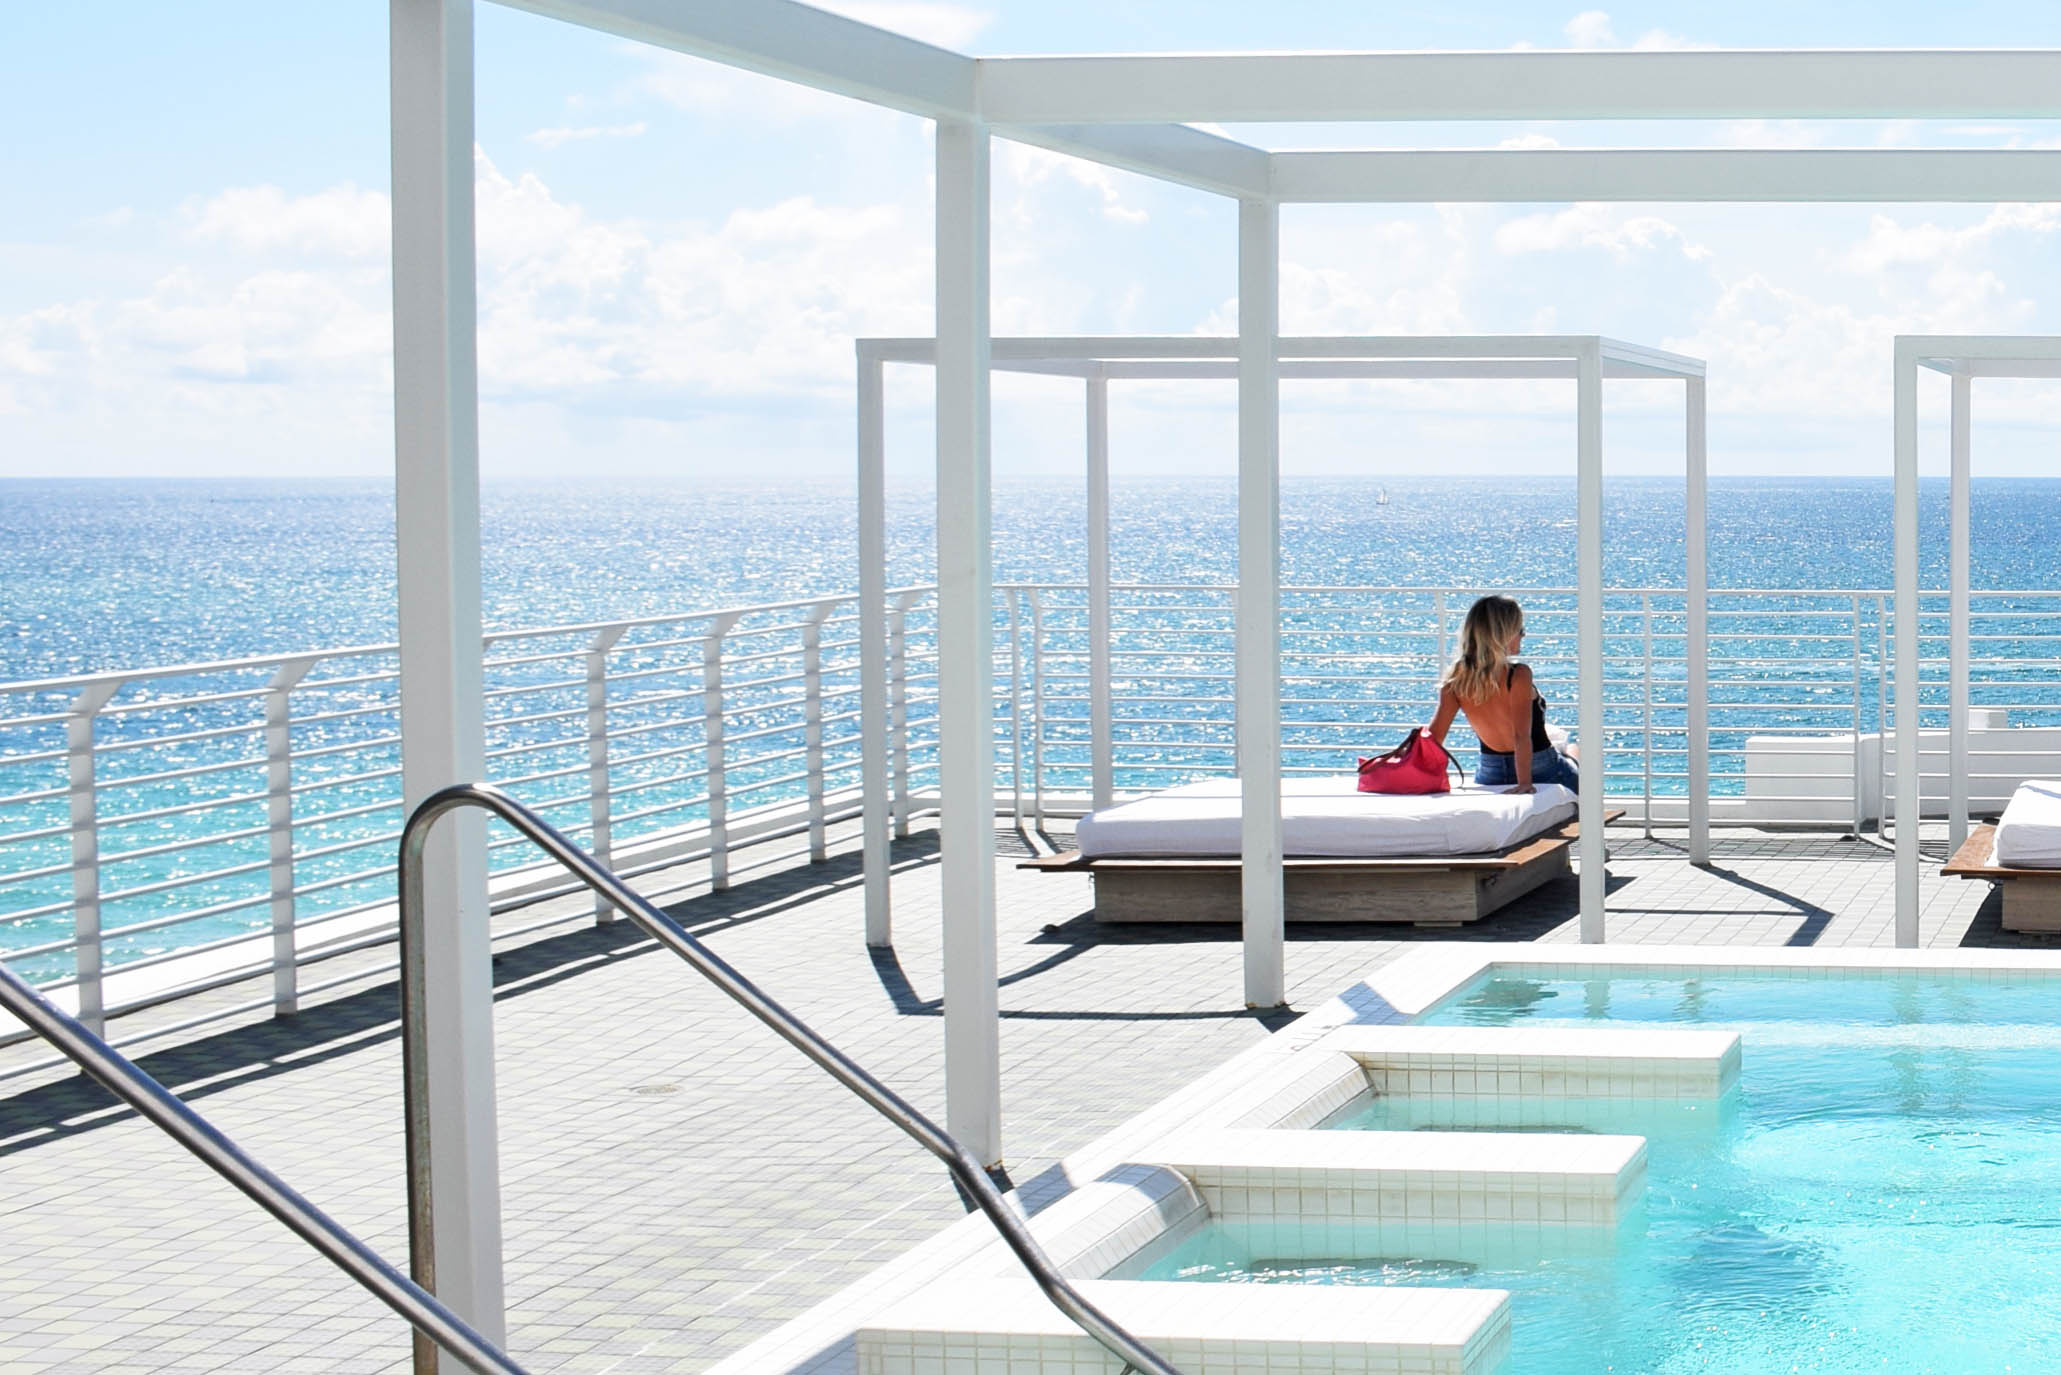 Piscina de hidromassagem no rooftop do Hotel Metropolitan by COMO em Miami Beach